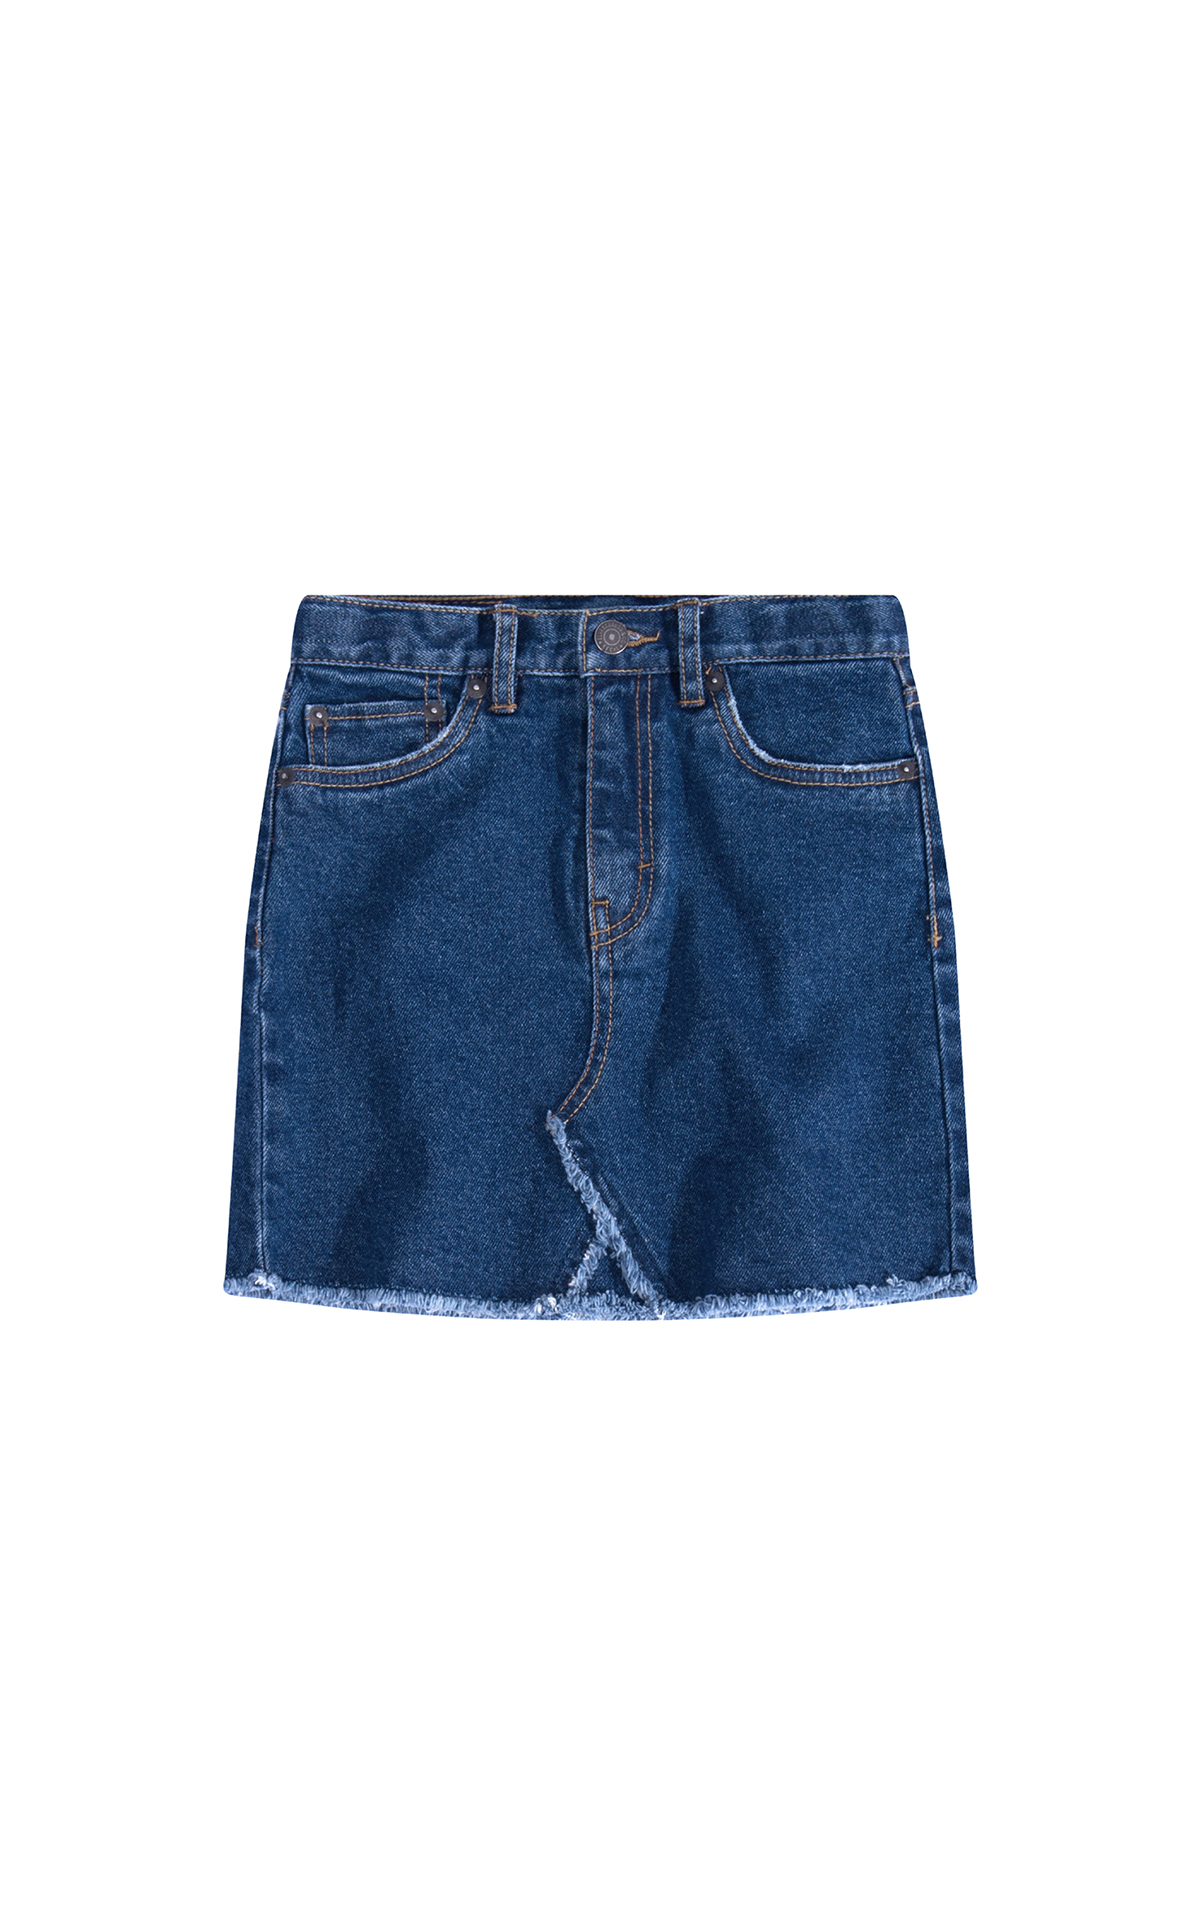 La Vallée Village Levi's kids High rise skirt